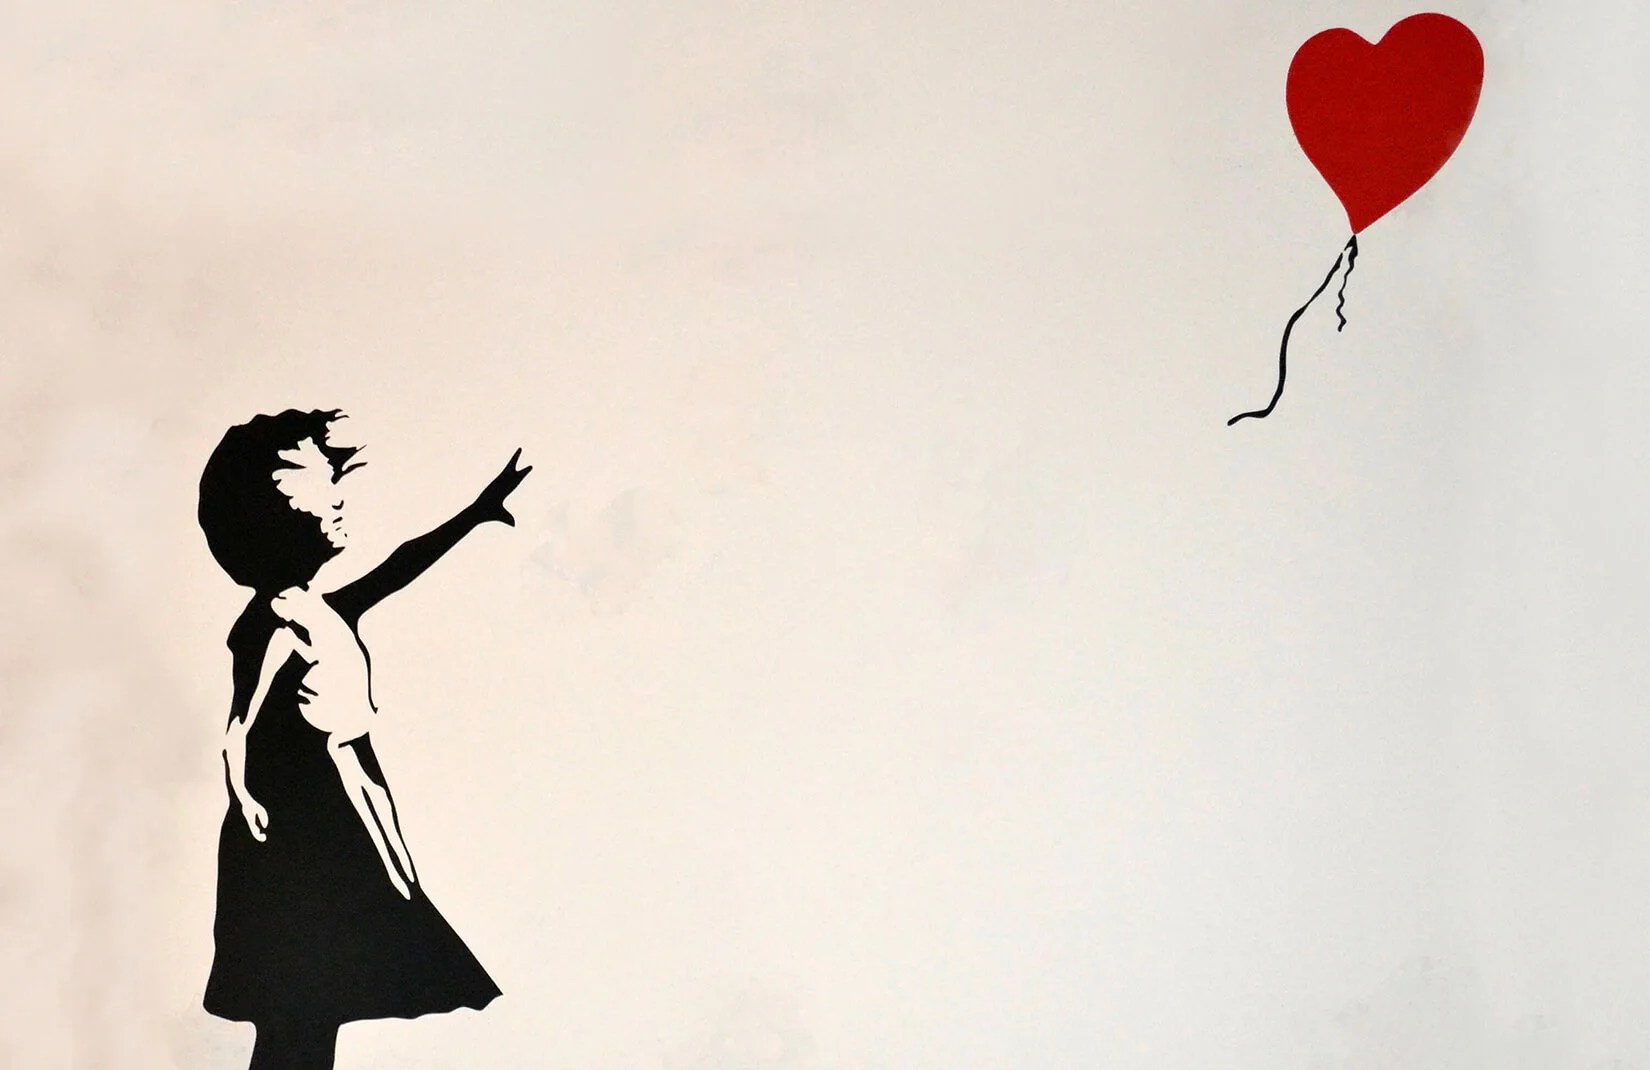 Girl Wallpaper App Banksy Balloon Girl Wallpaper Wall Mural Muralswallpaper